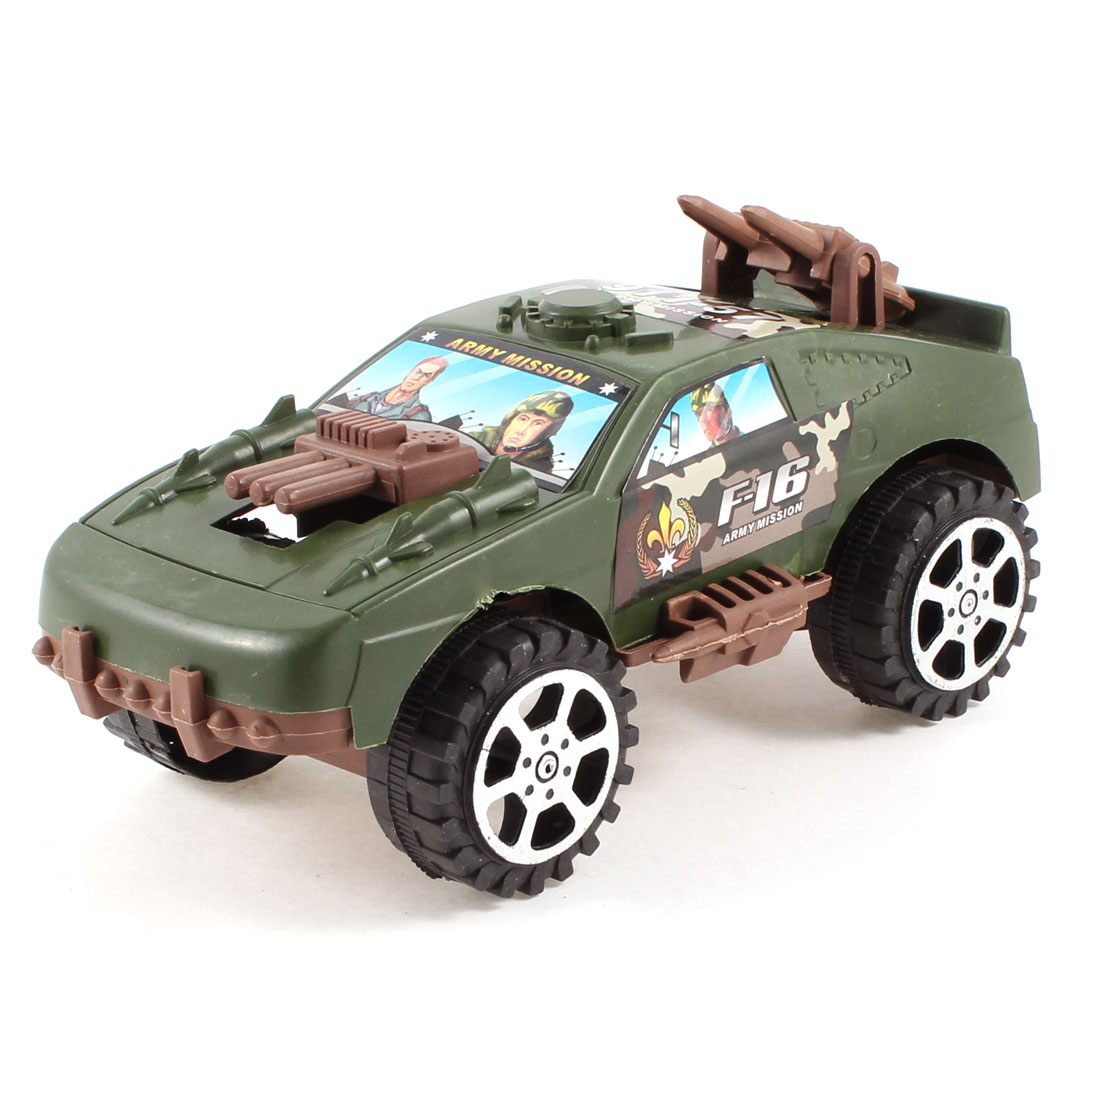 Green Black Plastic Emulational Battle Car Pull String Toy for Kids